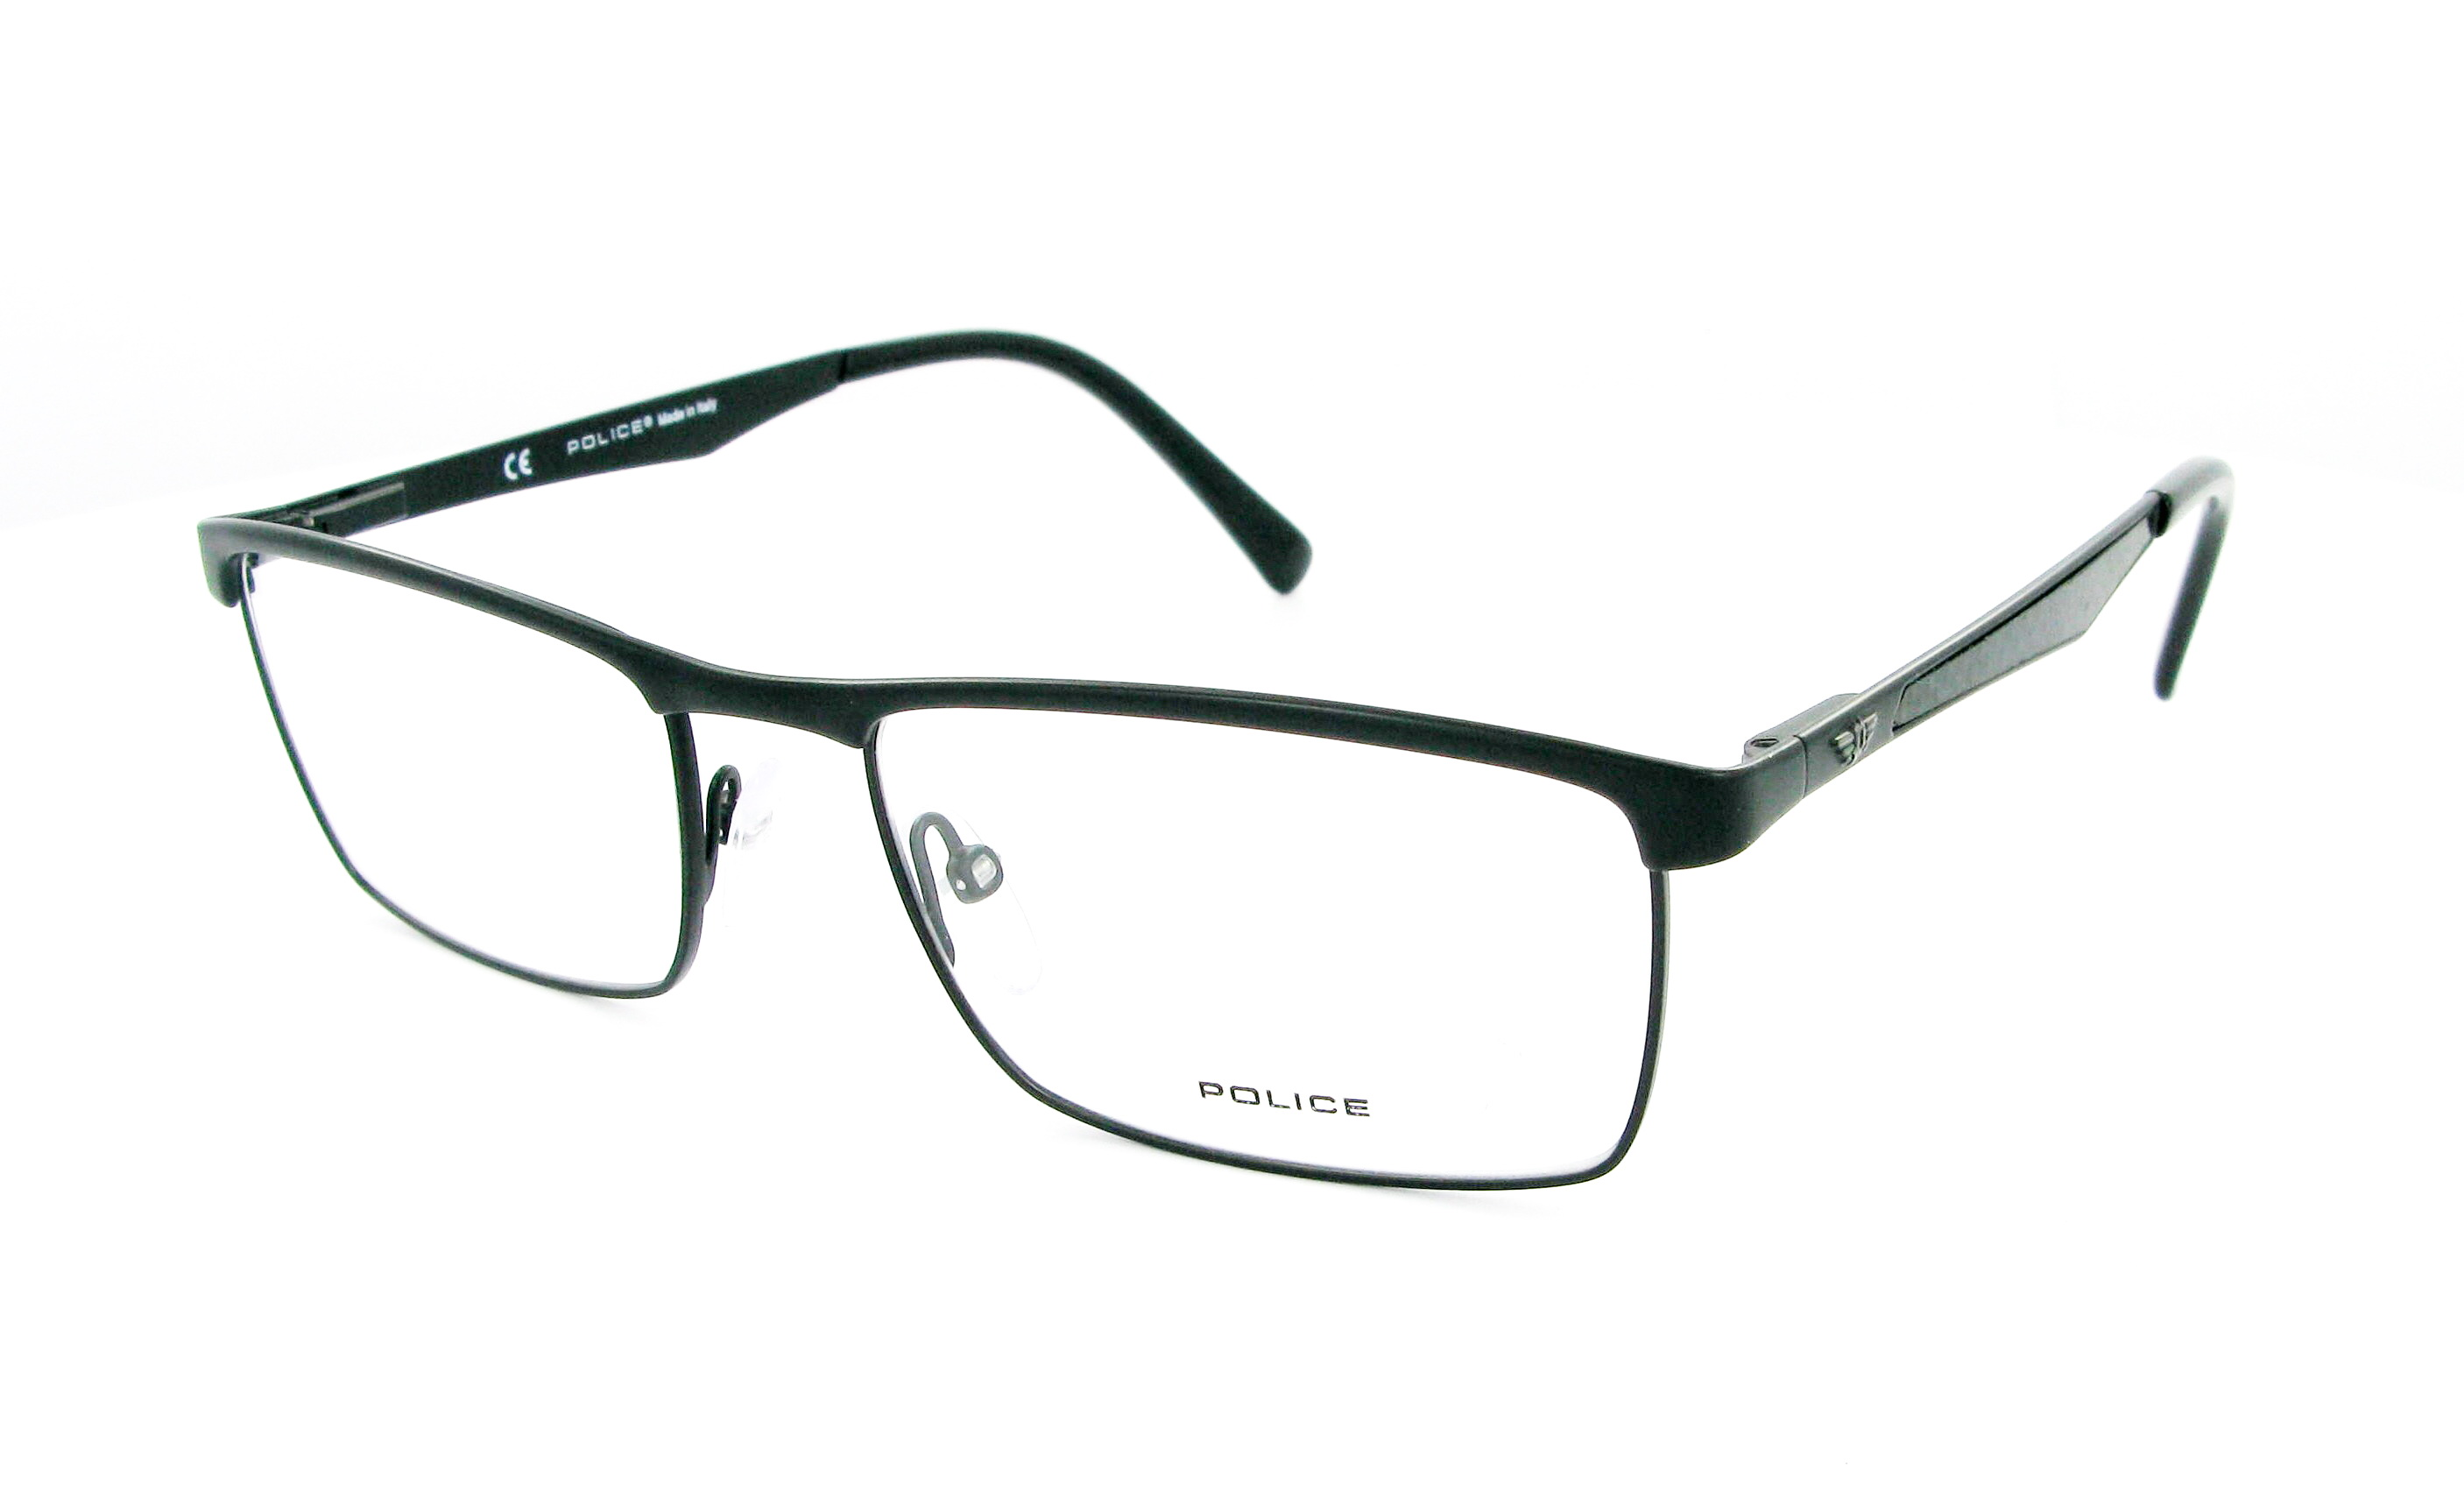 Eyeglasses POLICE V8733 0599 55/17 Man Noir Mat rectangle ...